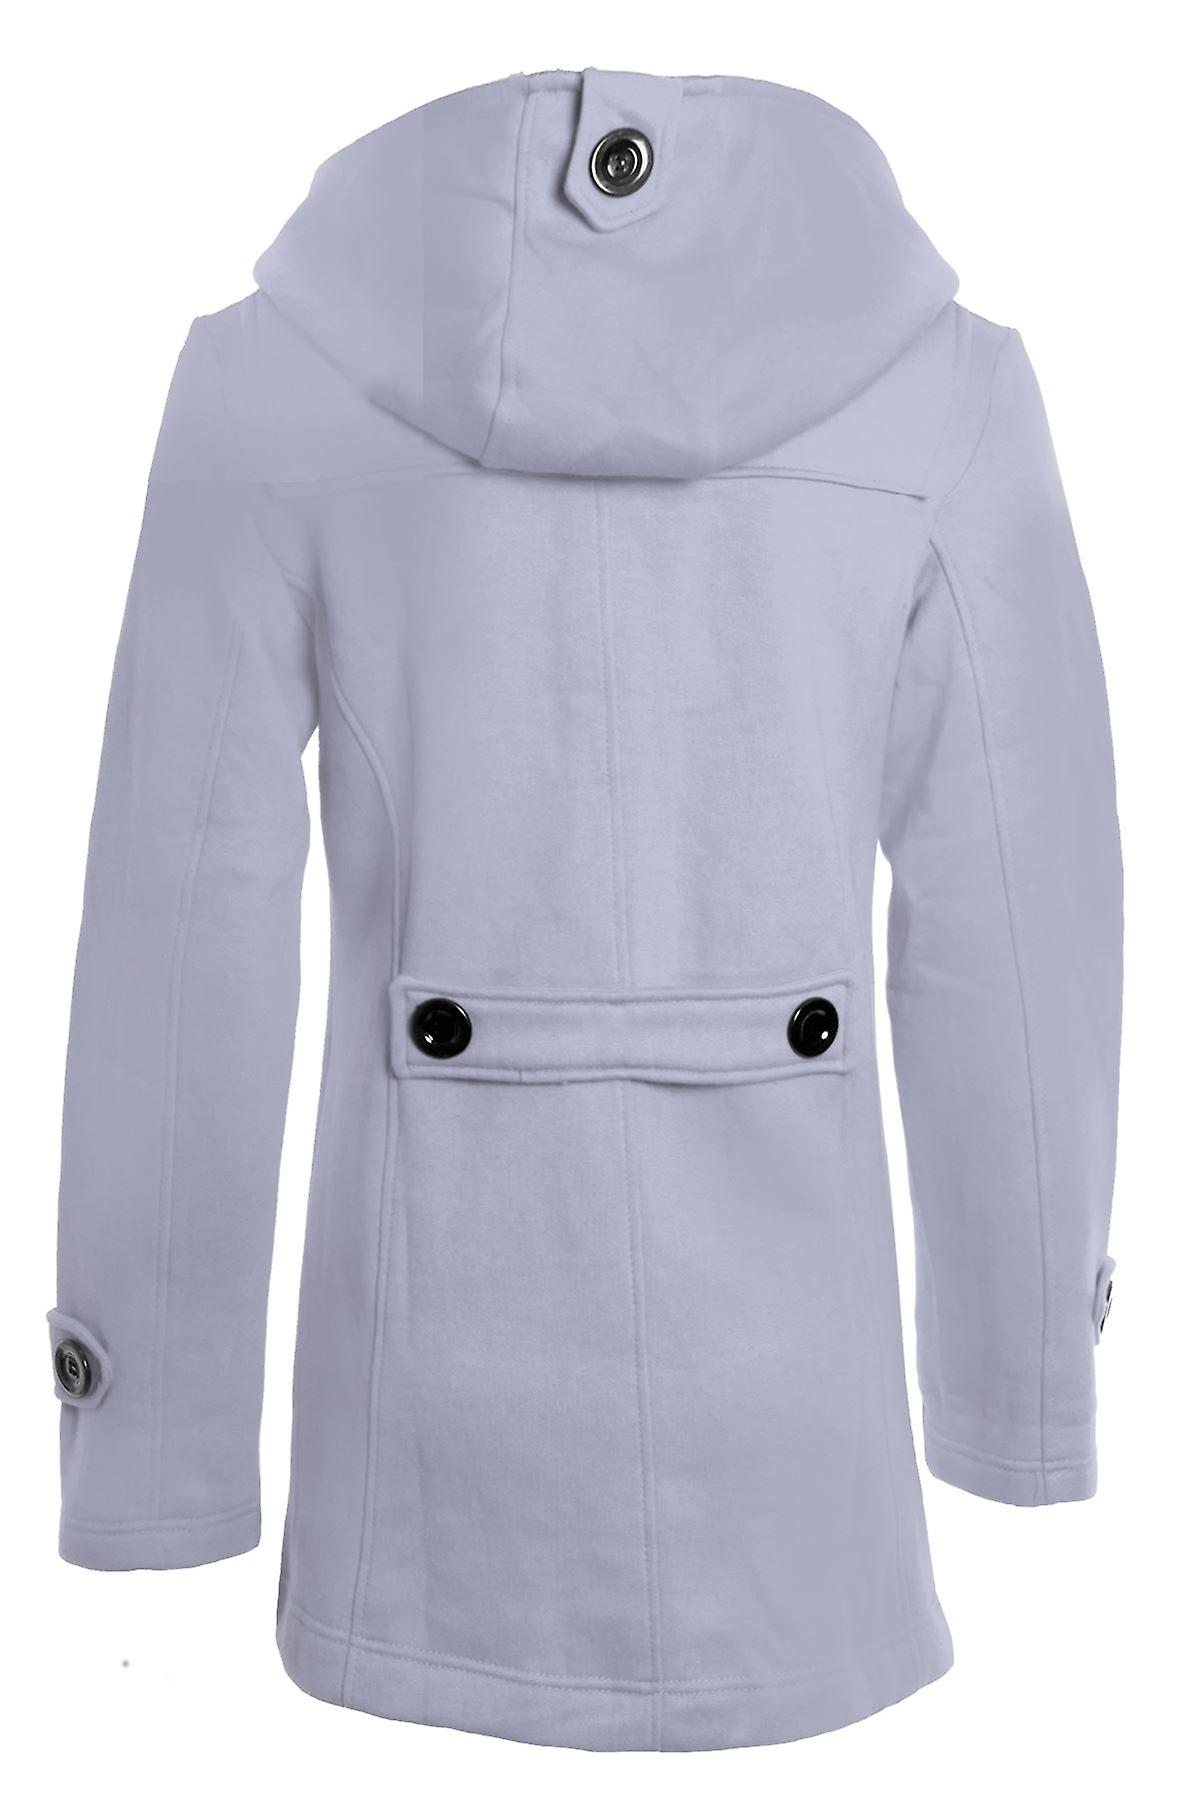 New Women's Duffle Trench Hooded Pocket Ladies Coat Jacket